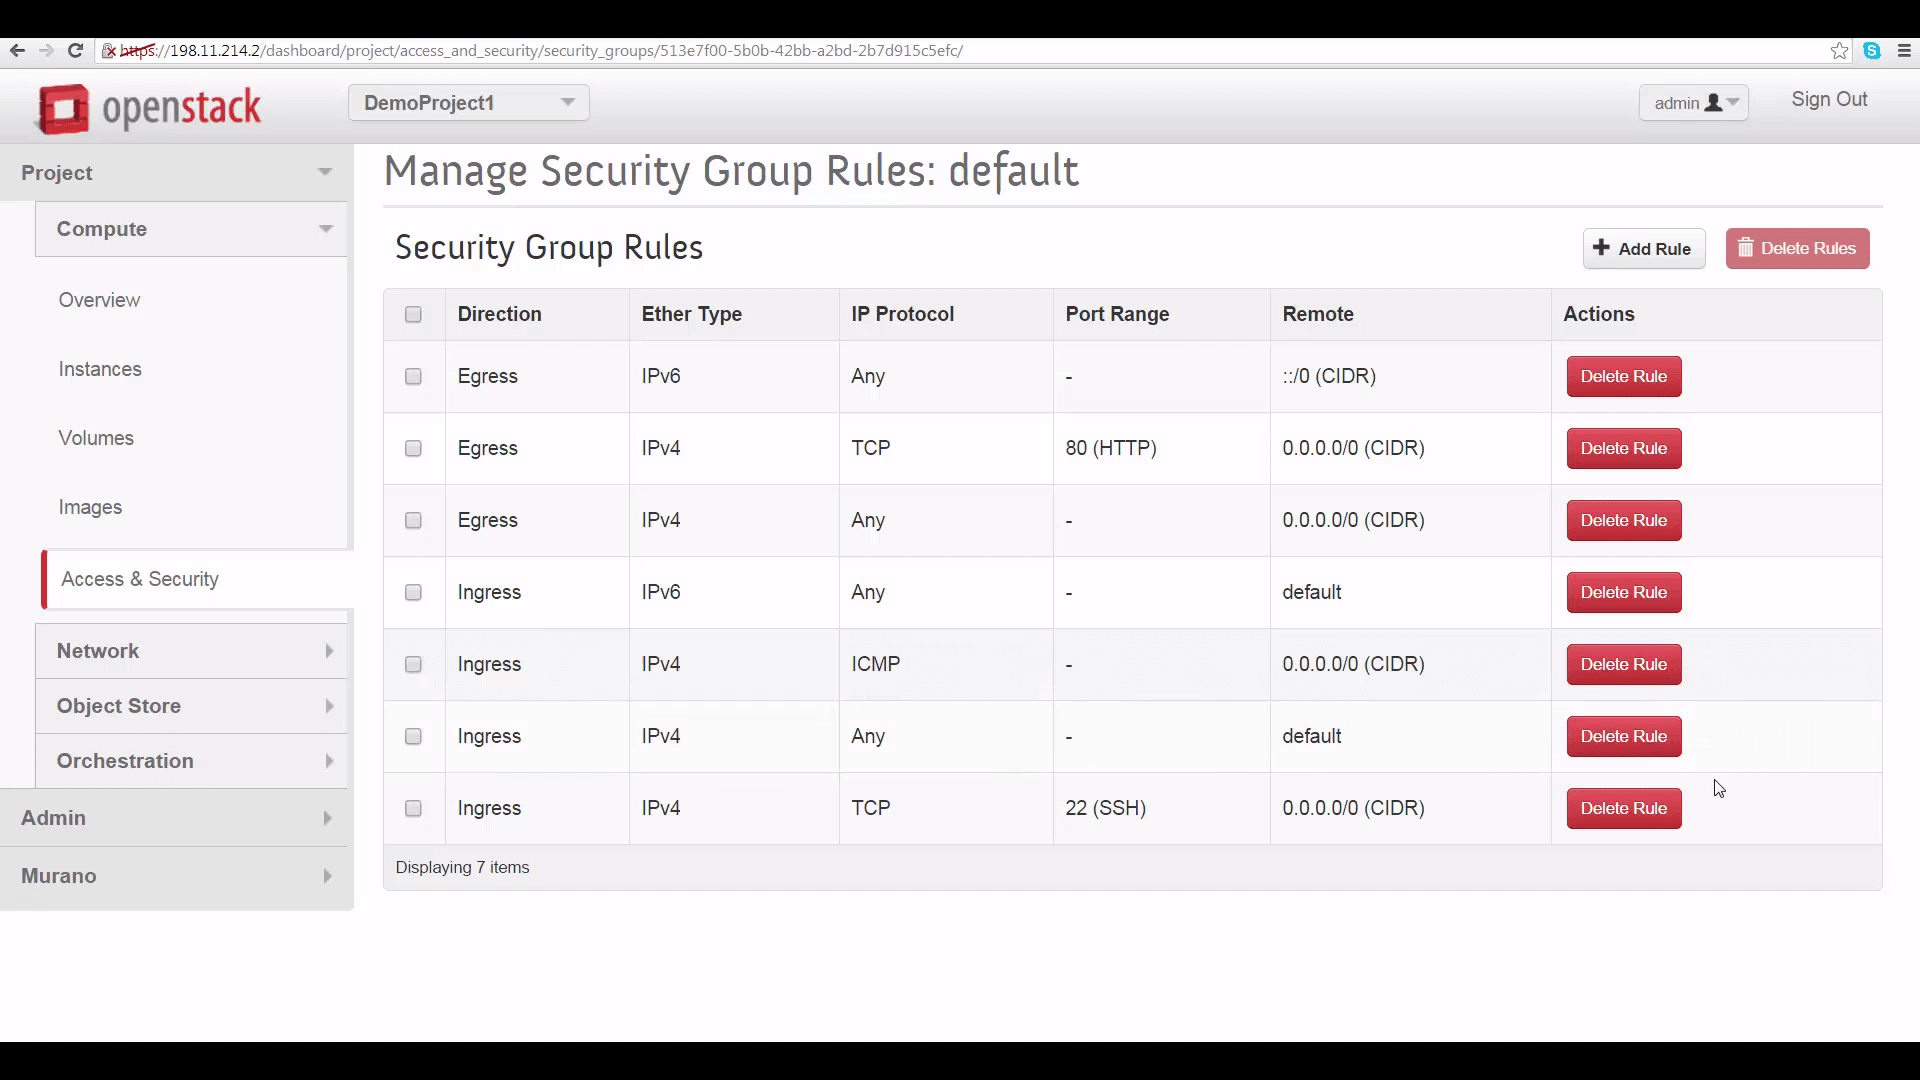 screenshot showing list of Ingress rules applied to each Projects' default Security Group